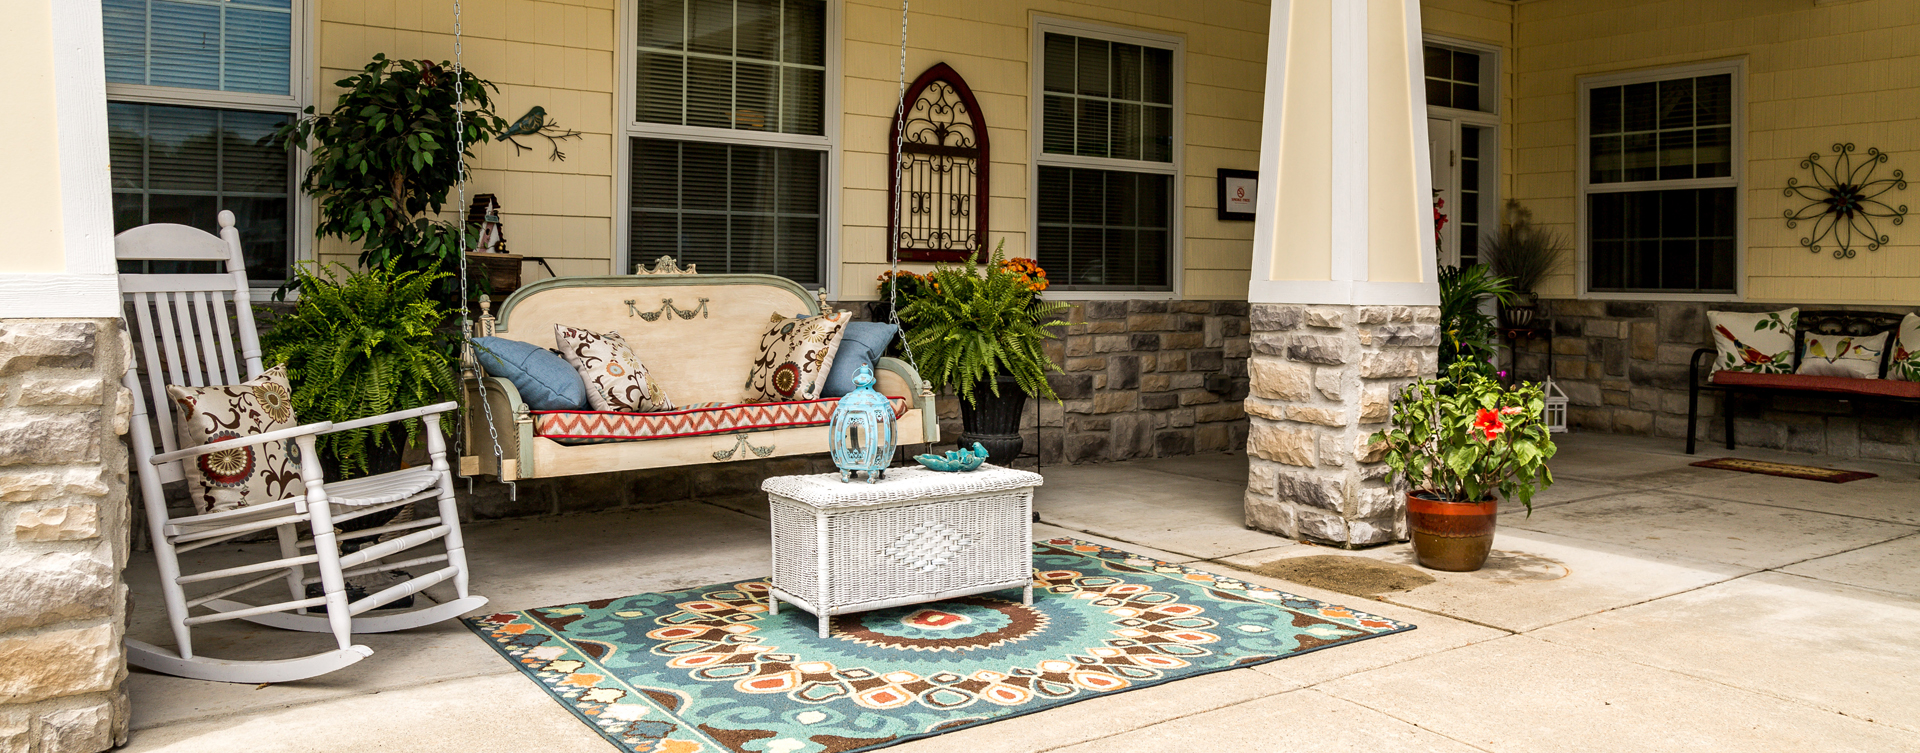 Relax in your favorite chair on the porch at Bickford of Battle Creek